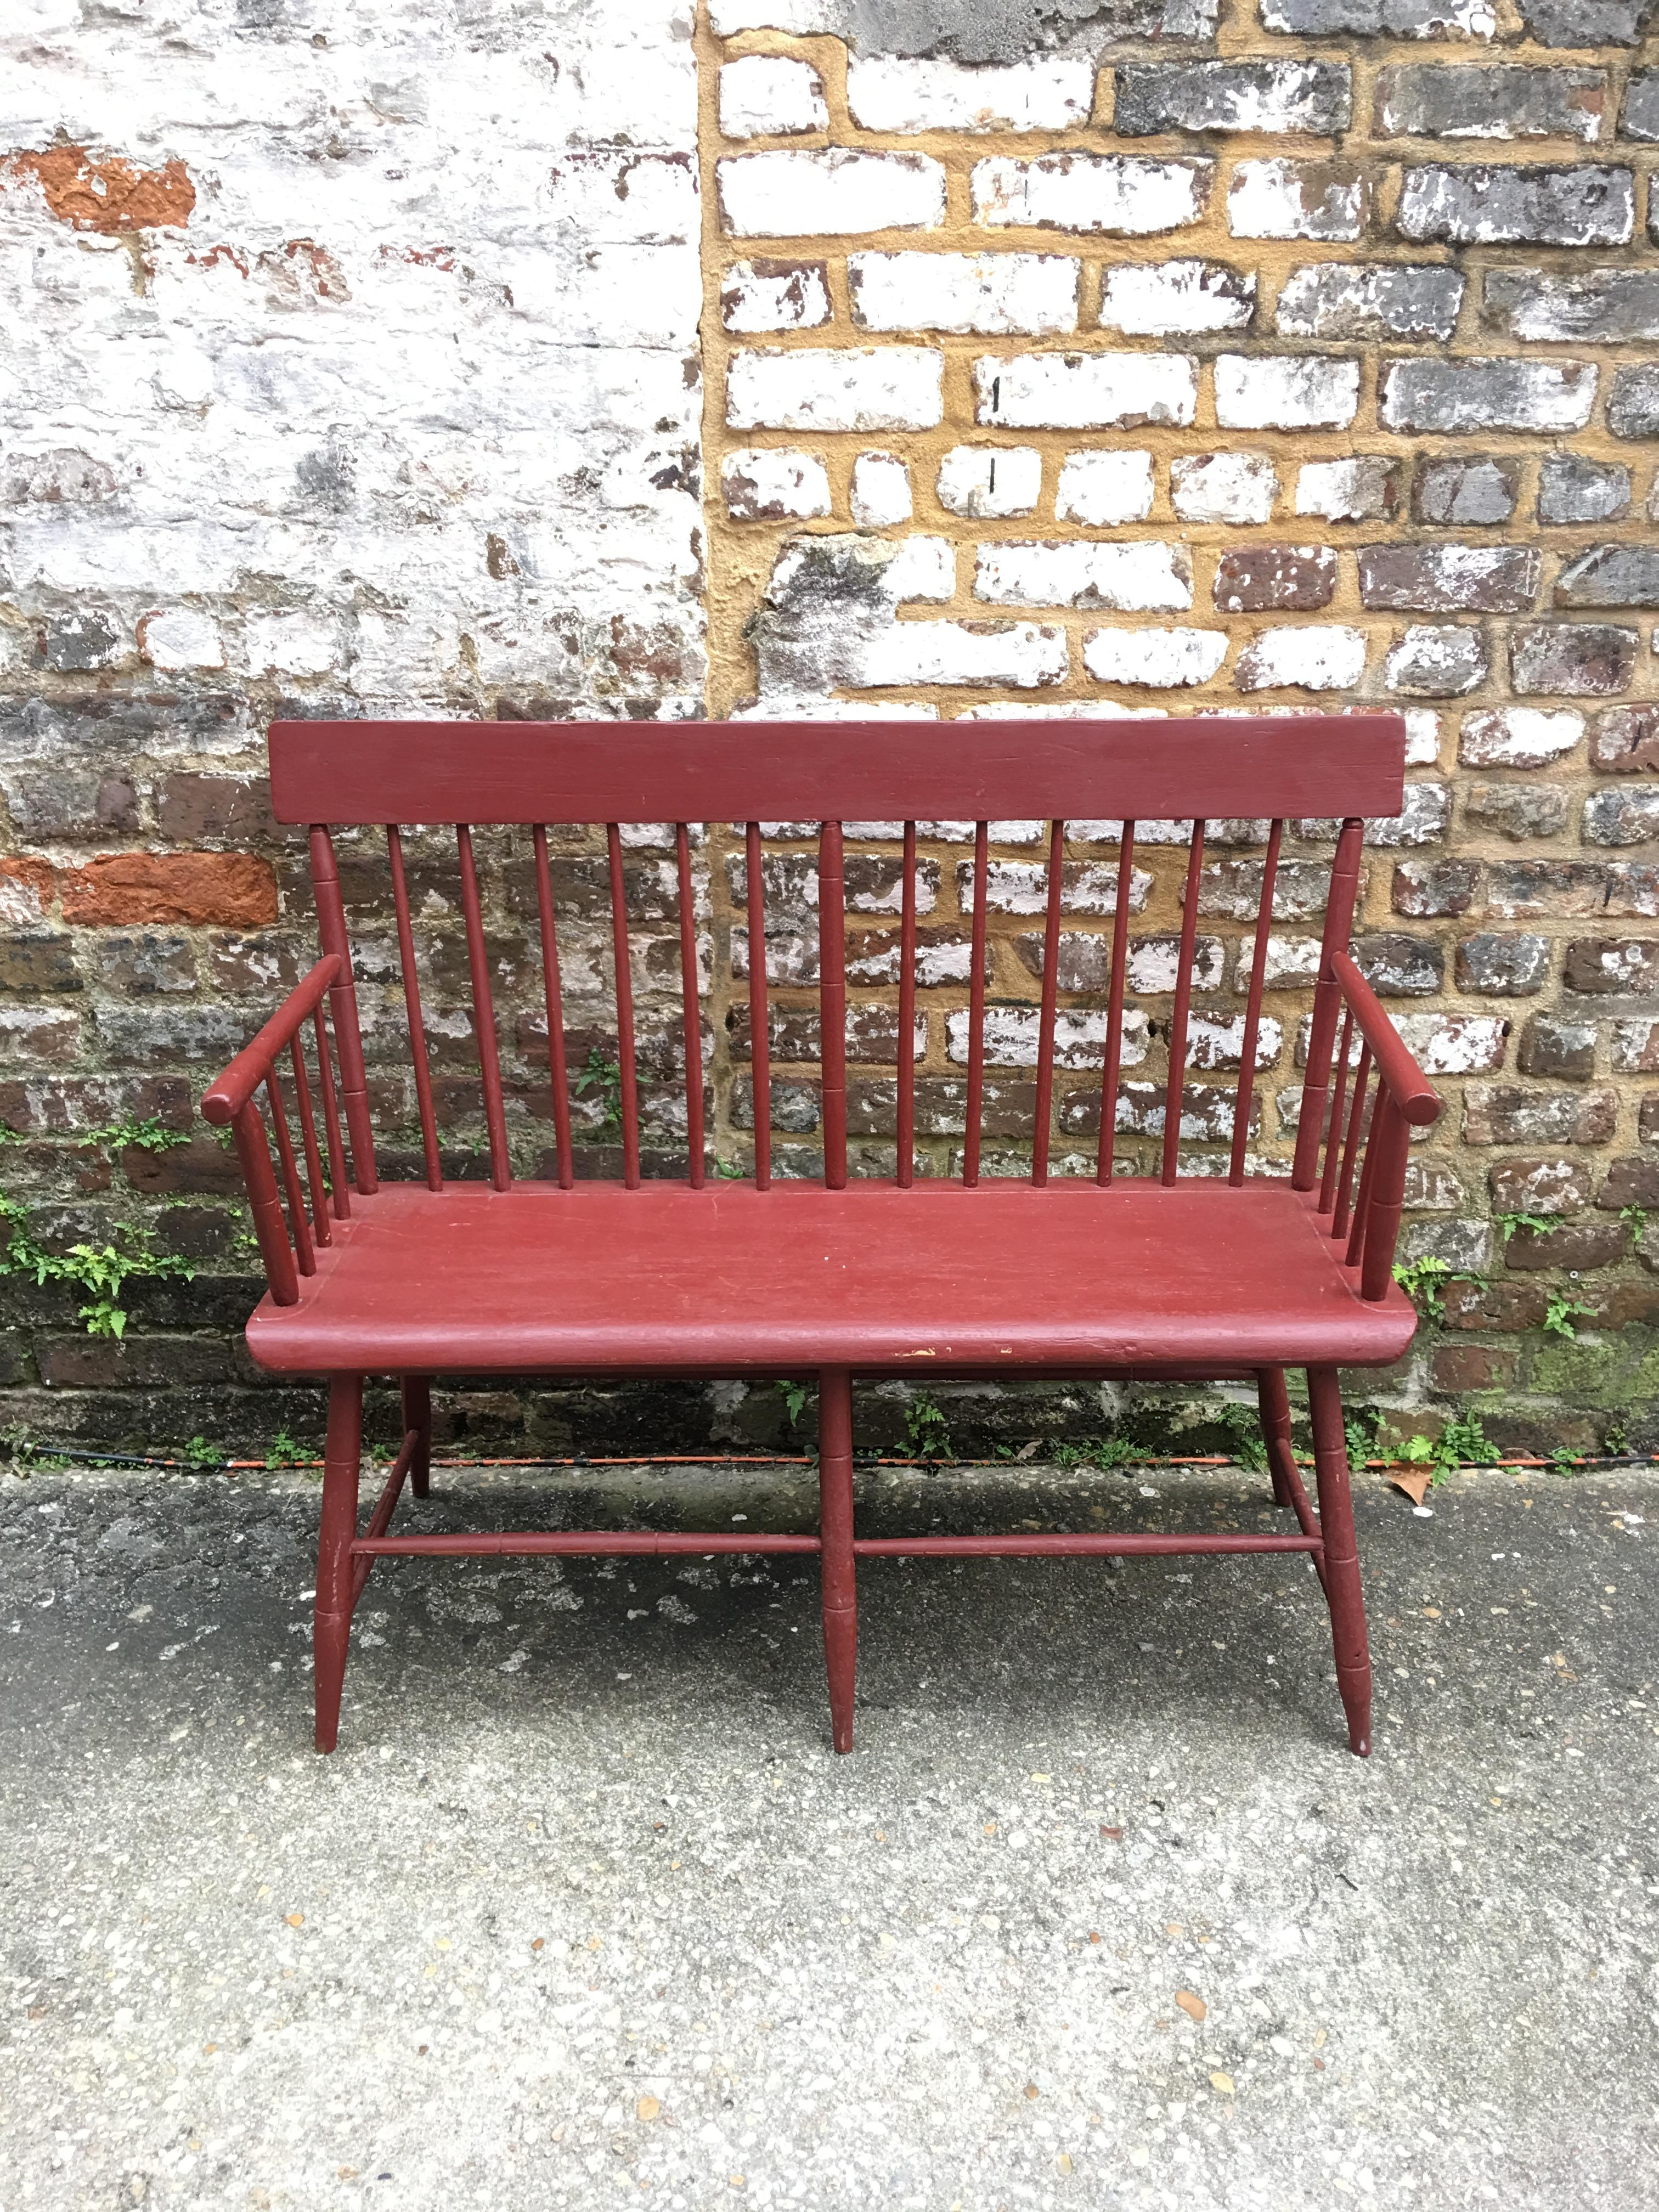 Surprising Small Painted Windsor Bench Circa 1830 Andrewgaddart Wooden Chair Designs For Living Room Andrewgaddartcom